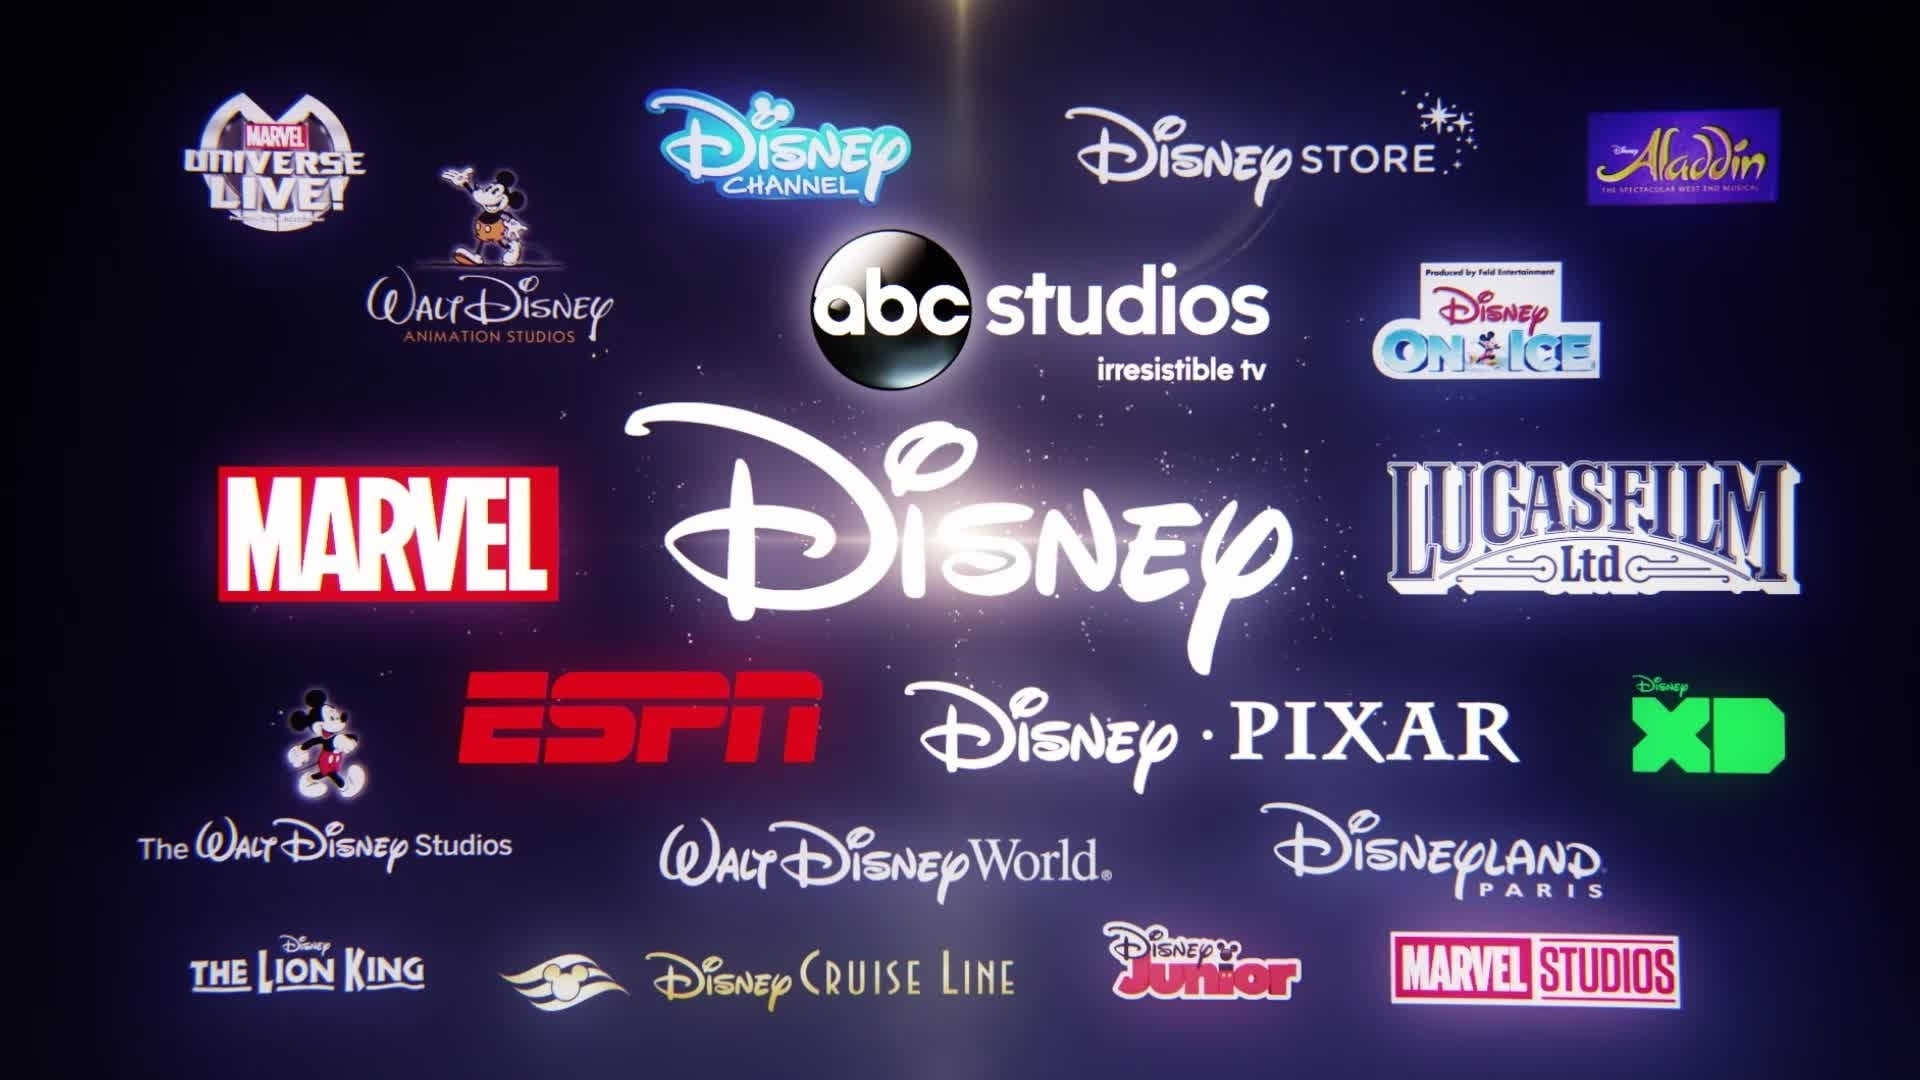 About Us - The Walt Disney Family of Companies Video (DE)